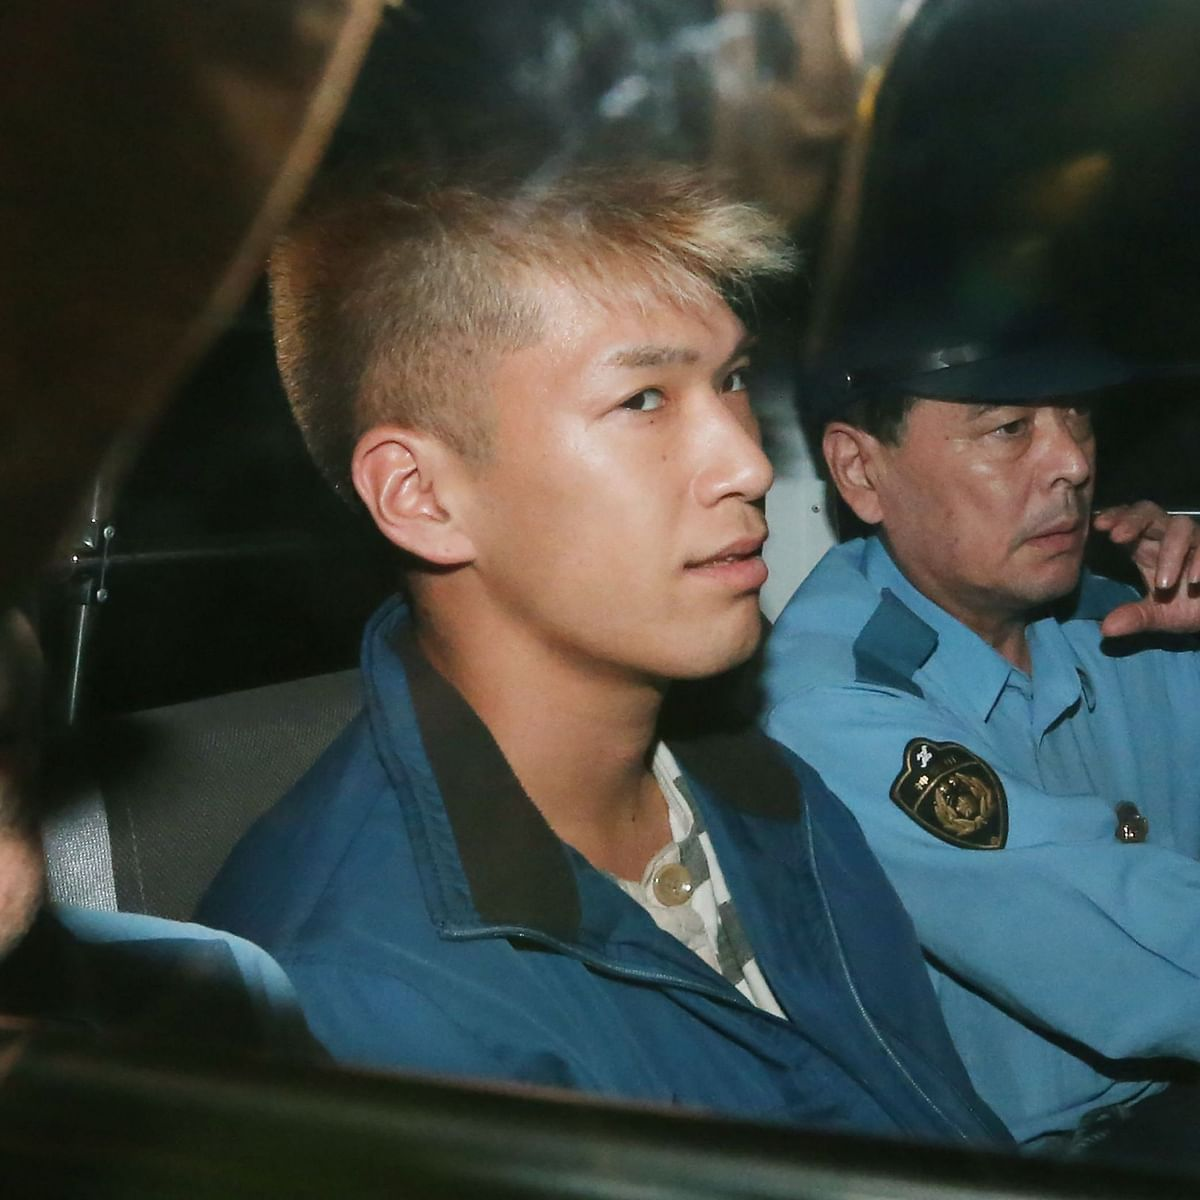 Japanese man pleads not guilty of killing 19